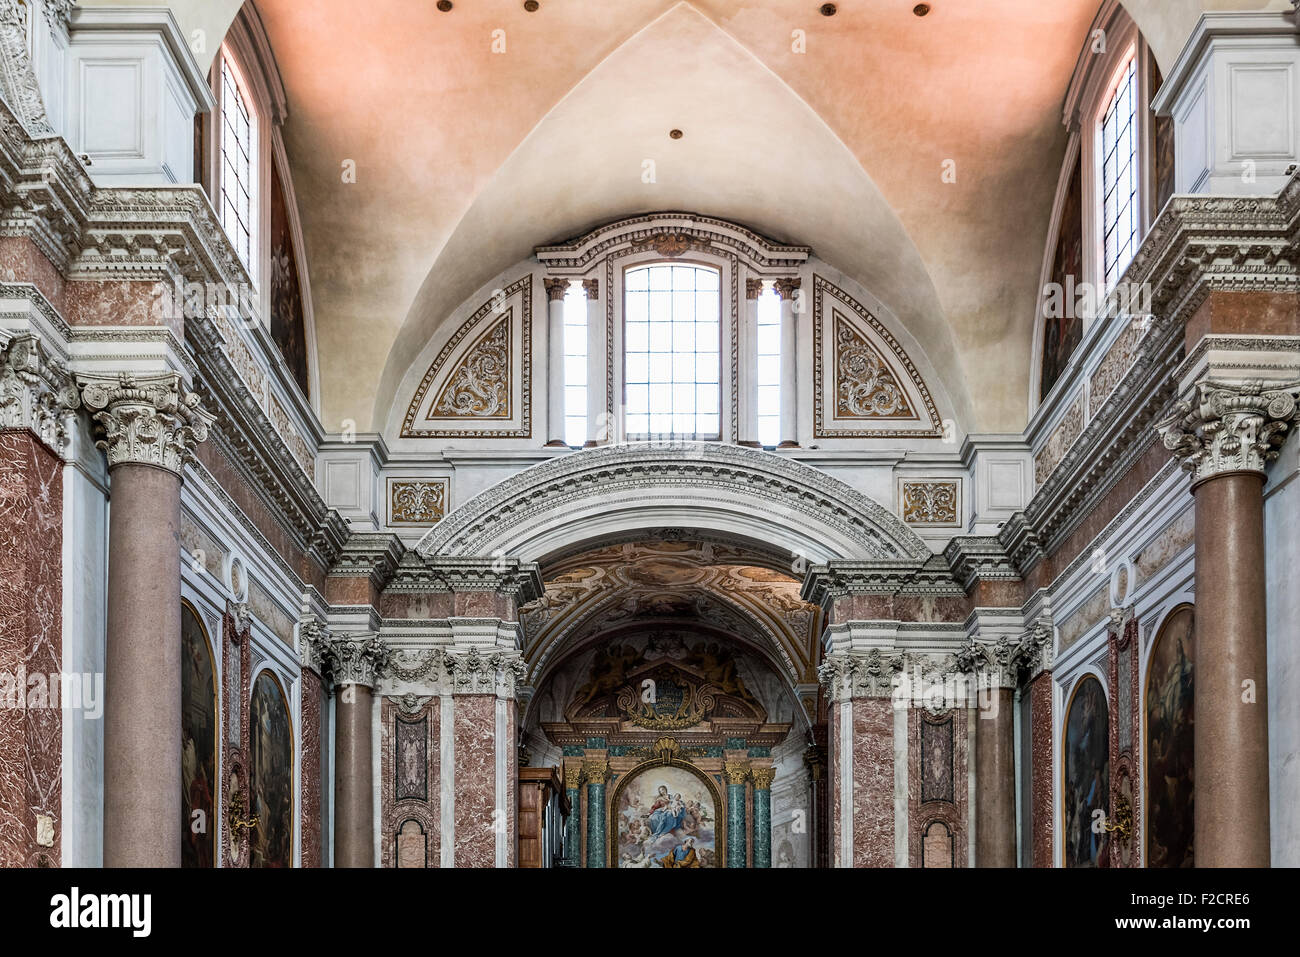 Transept detail, Basilica of St. Mary of the Angels and the Martyrs, Rome, Italy - Stock Image